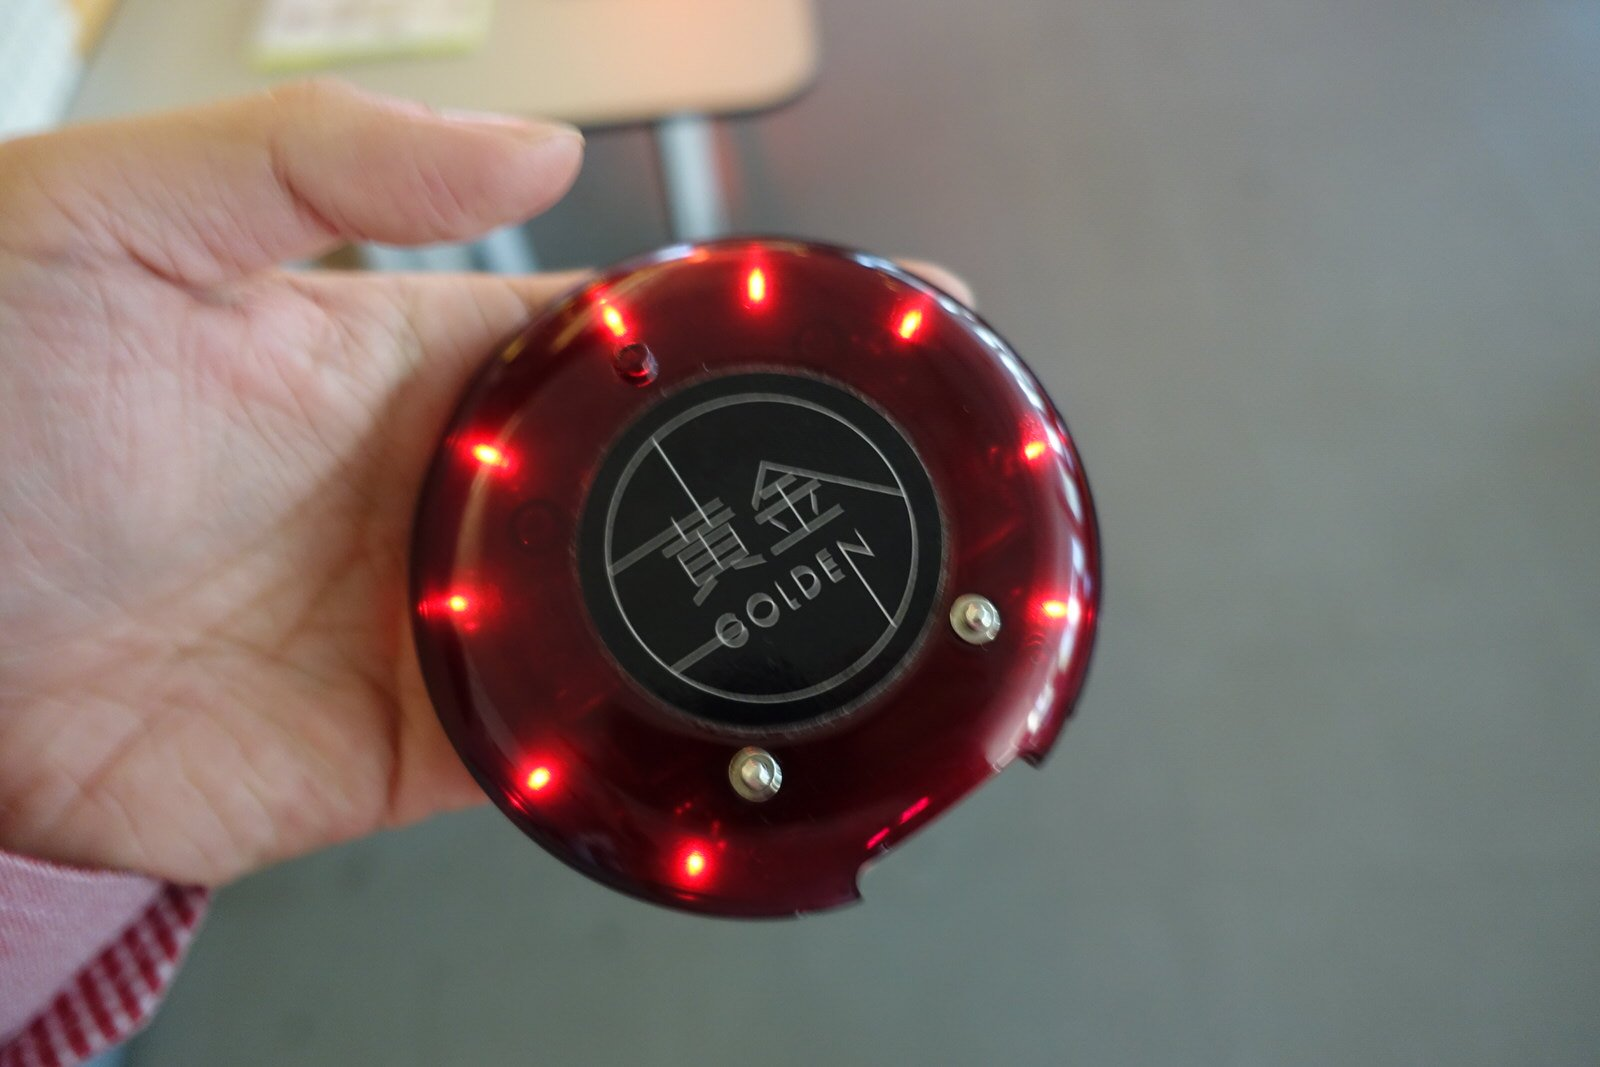 the projector buzzer